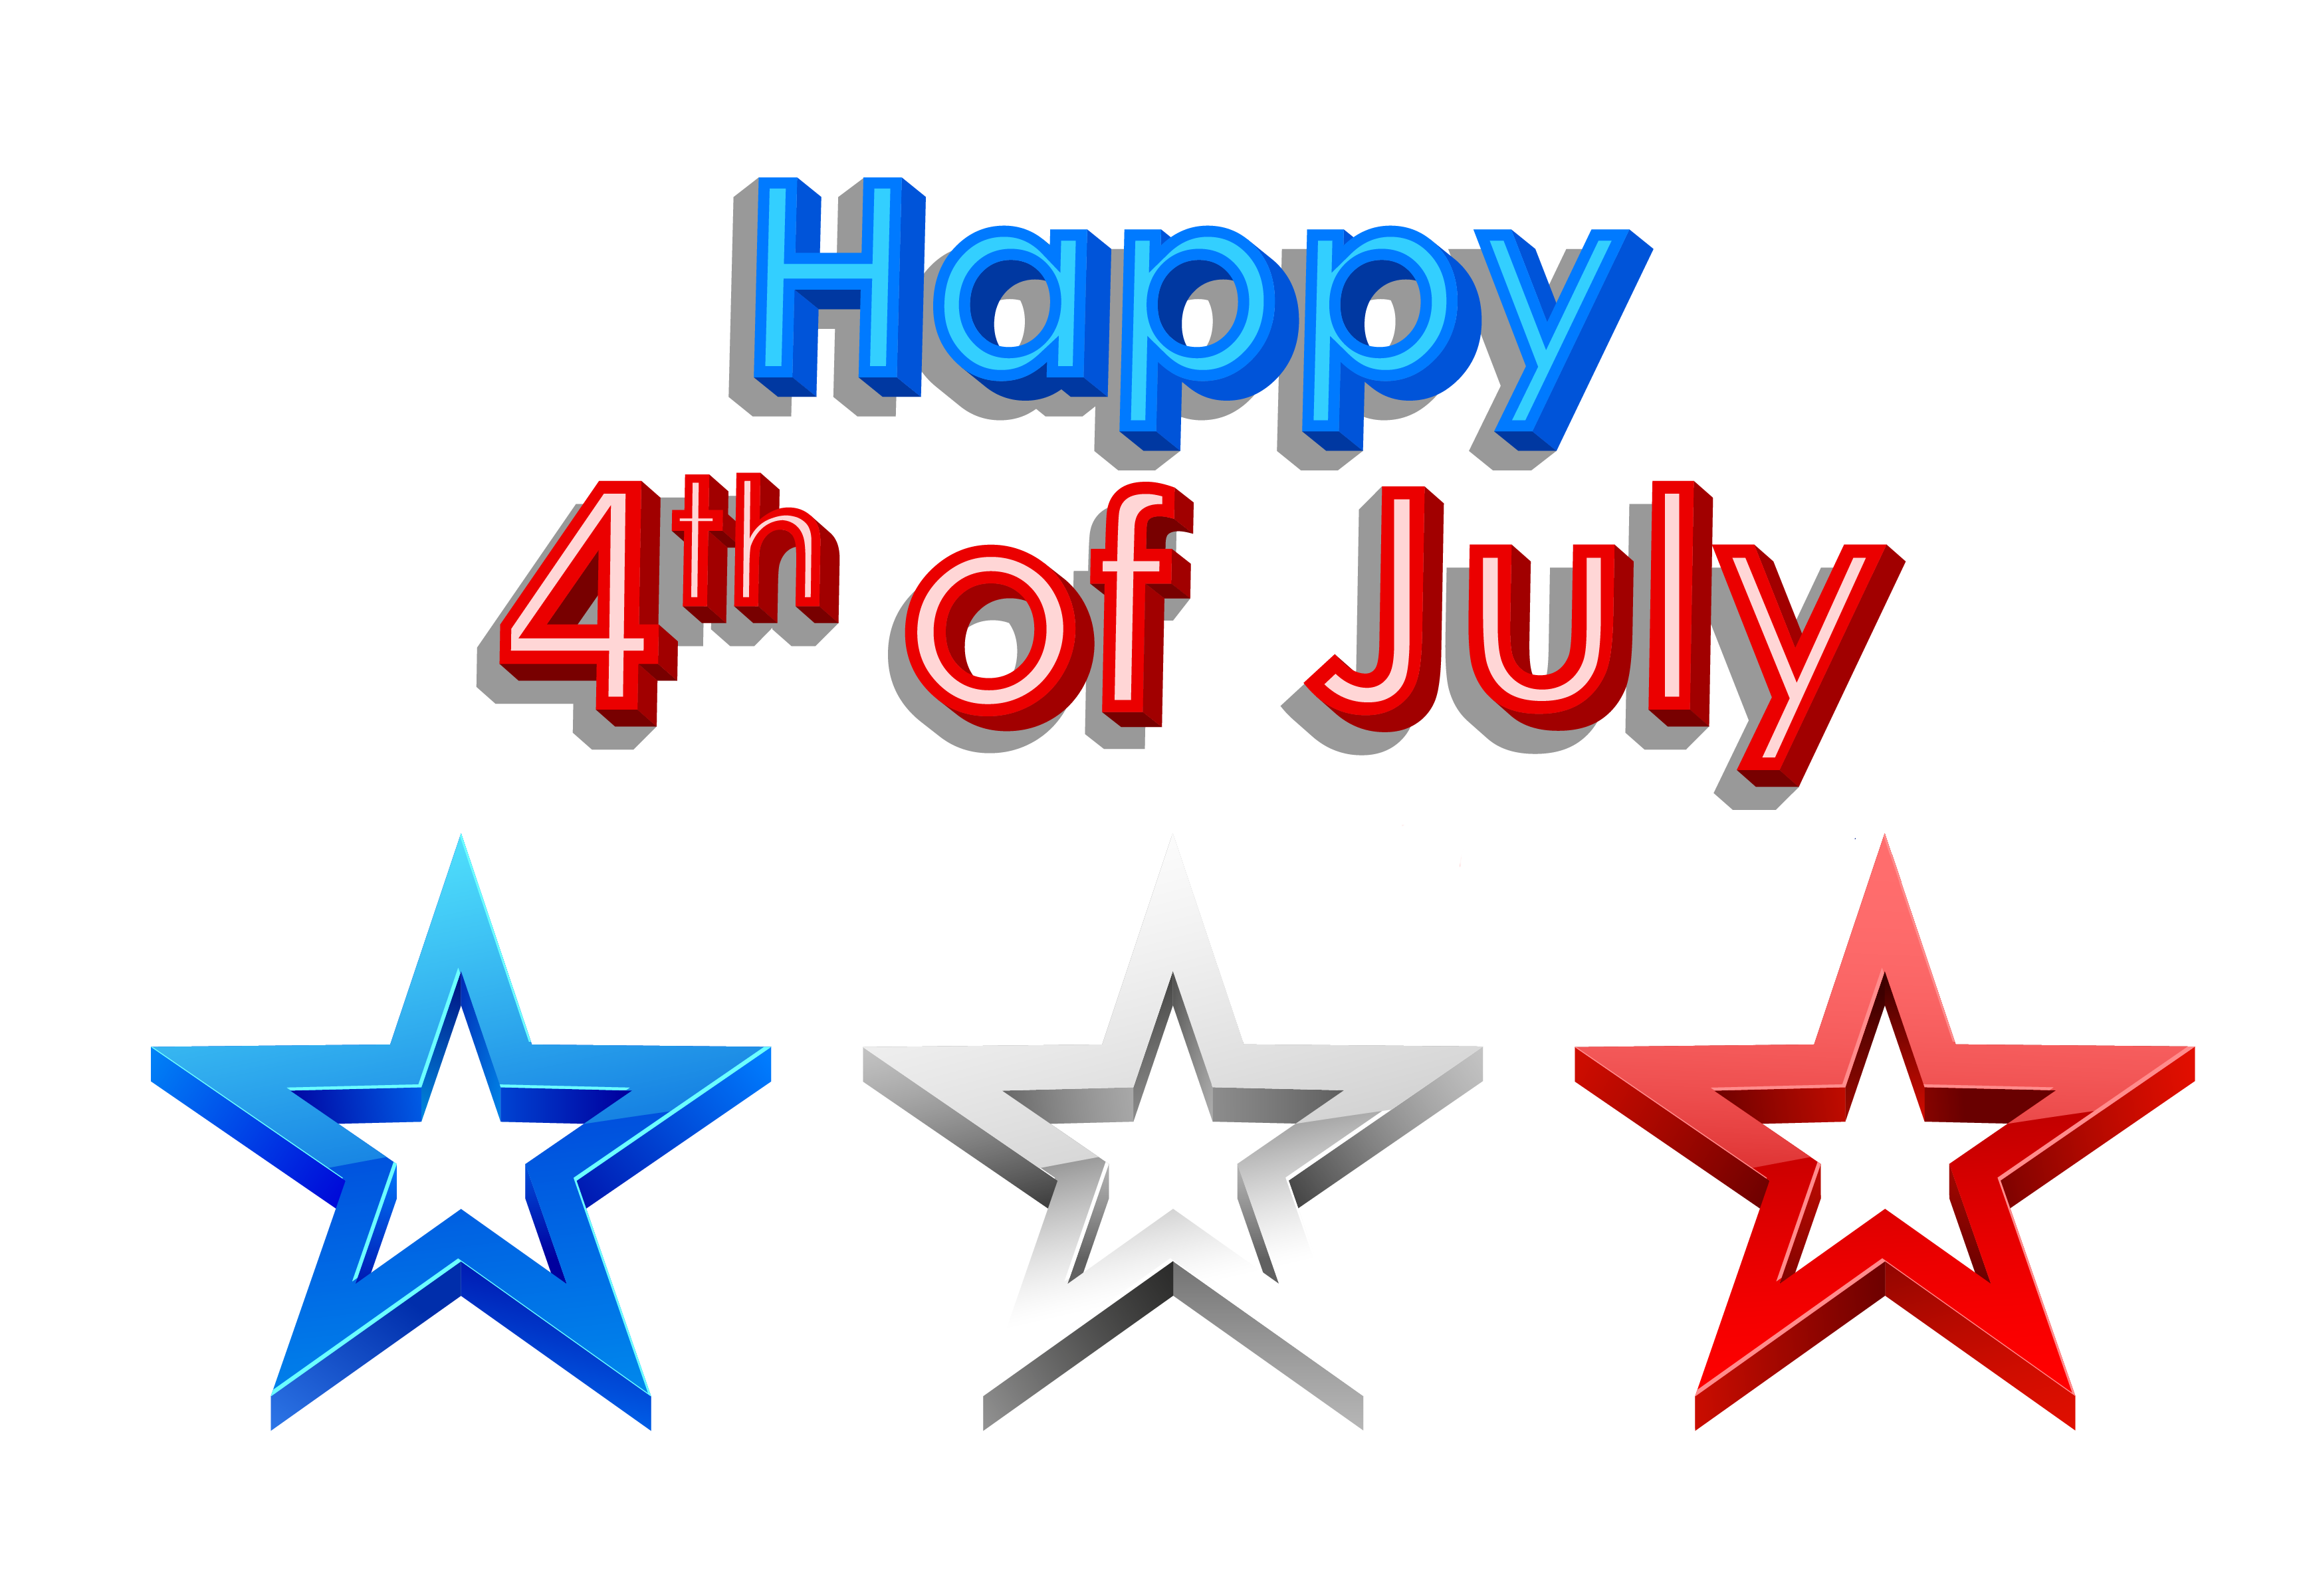 4th of july fireworks clipart png-4th of july fireworks clipart png-3